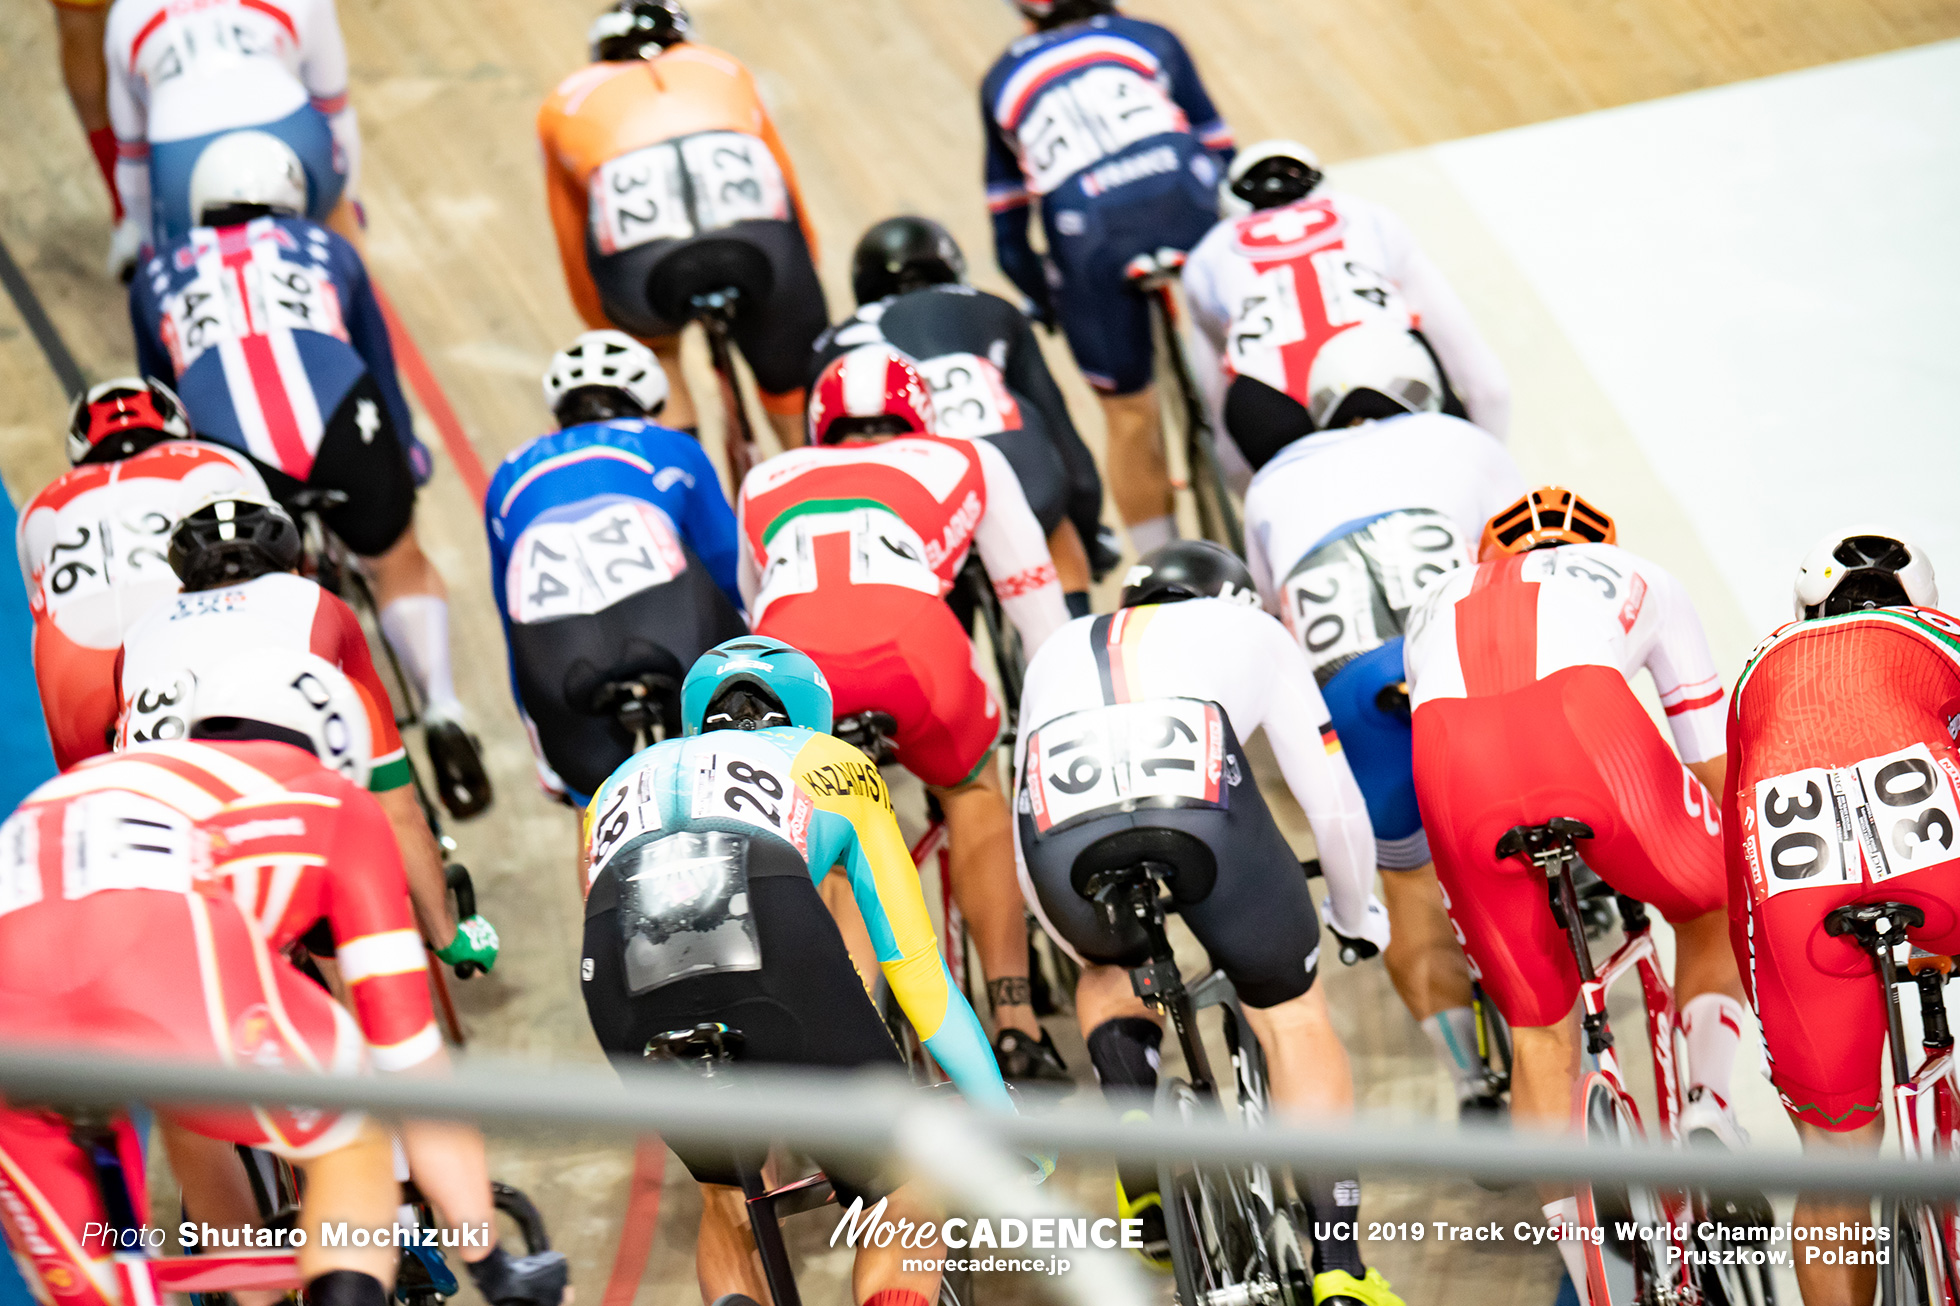 Men's Omnium Elimination / 2019 Track Cycling World Championships Pruszków, Poland